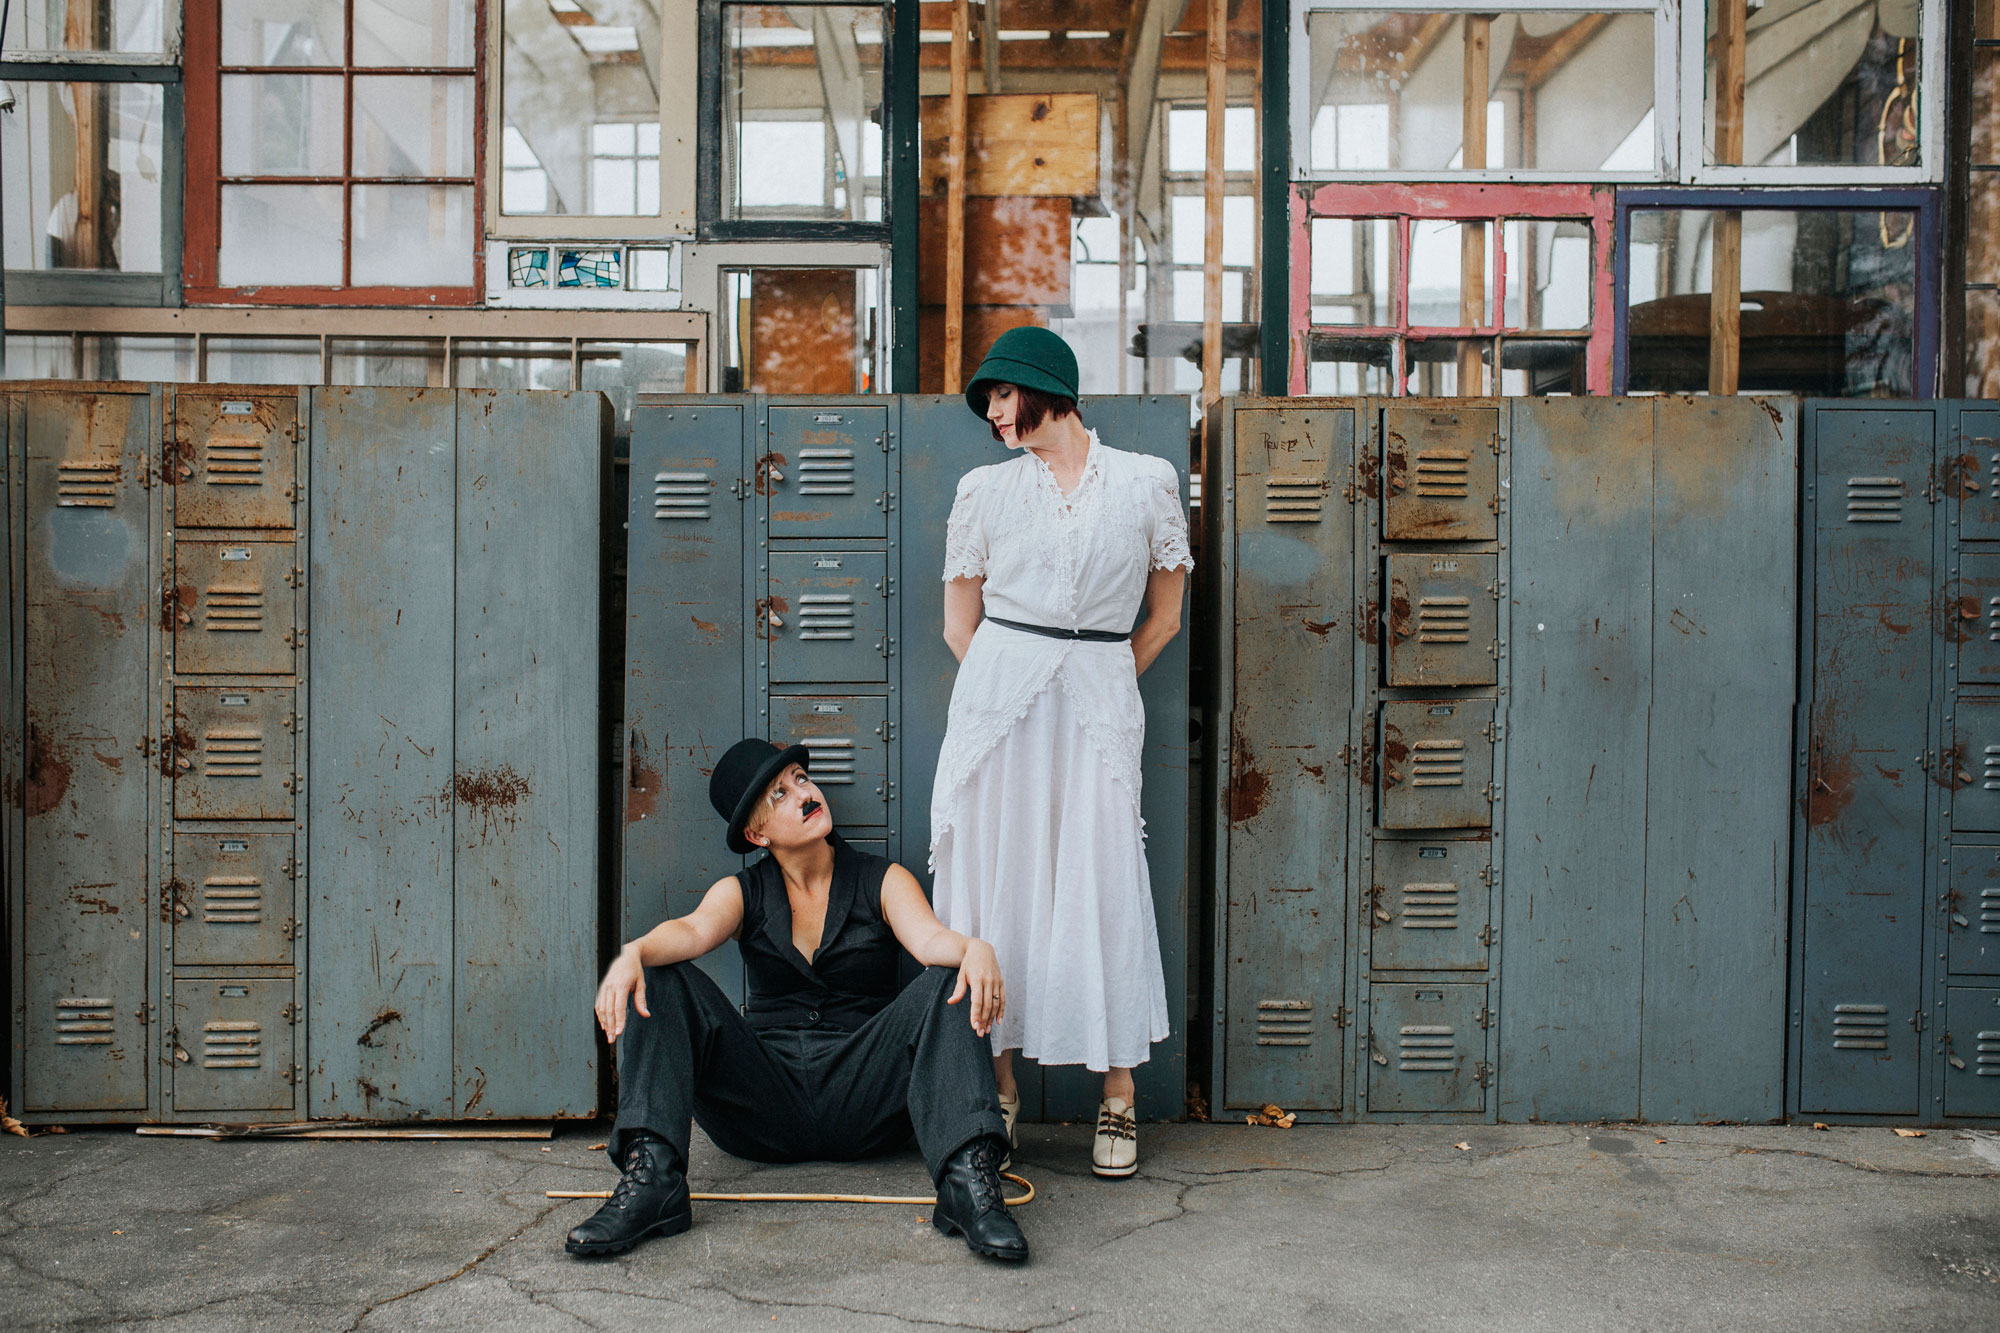 Day after wedding session at Ohmega Salvage in Berkeley- dressed as Charlie Chaplin and ingenue in front of vintage lockers by Becca Henry Photography